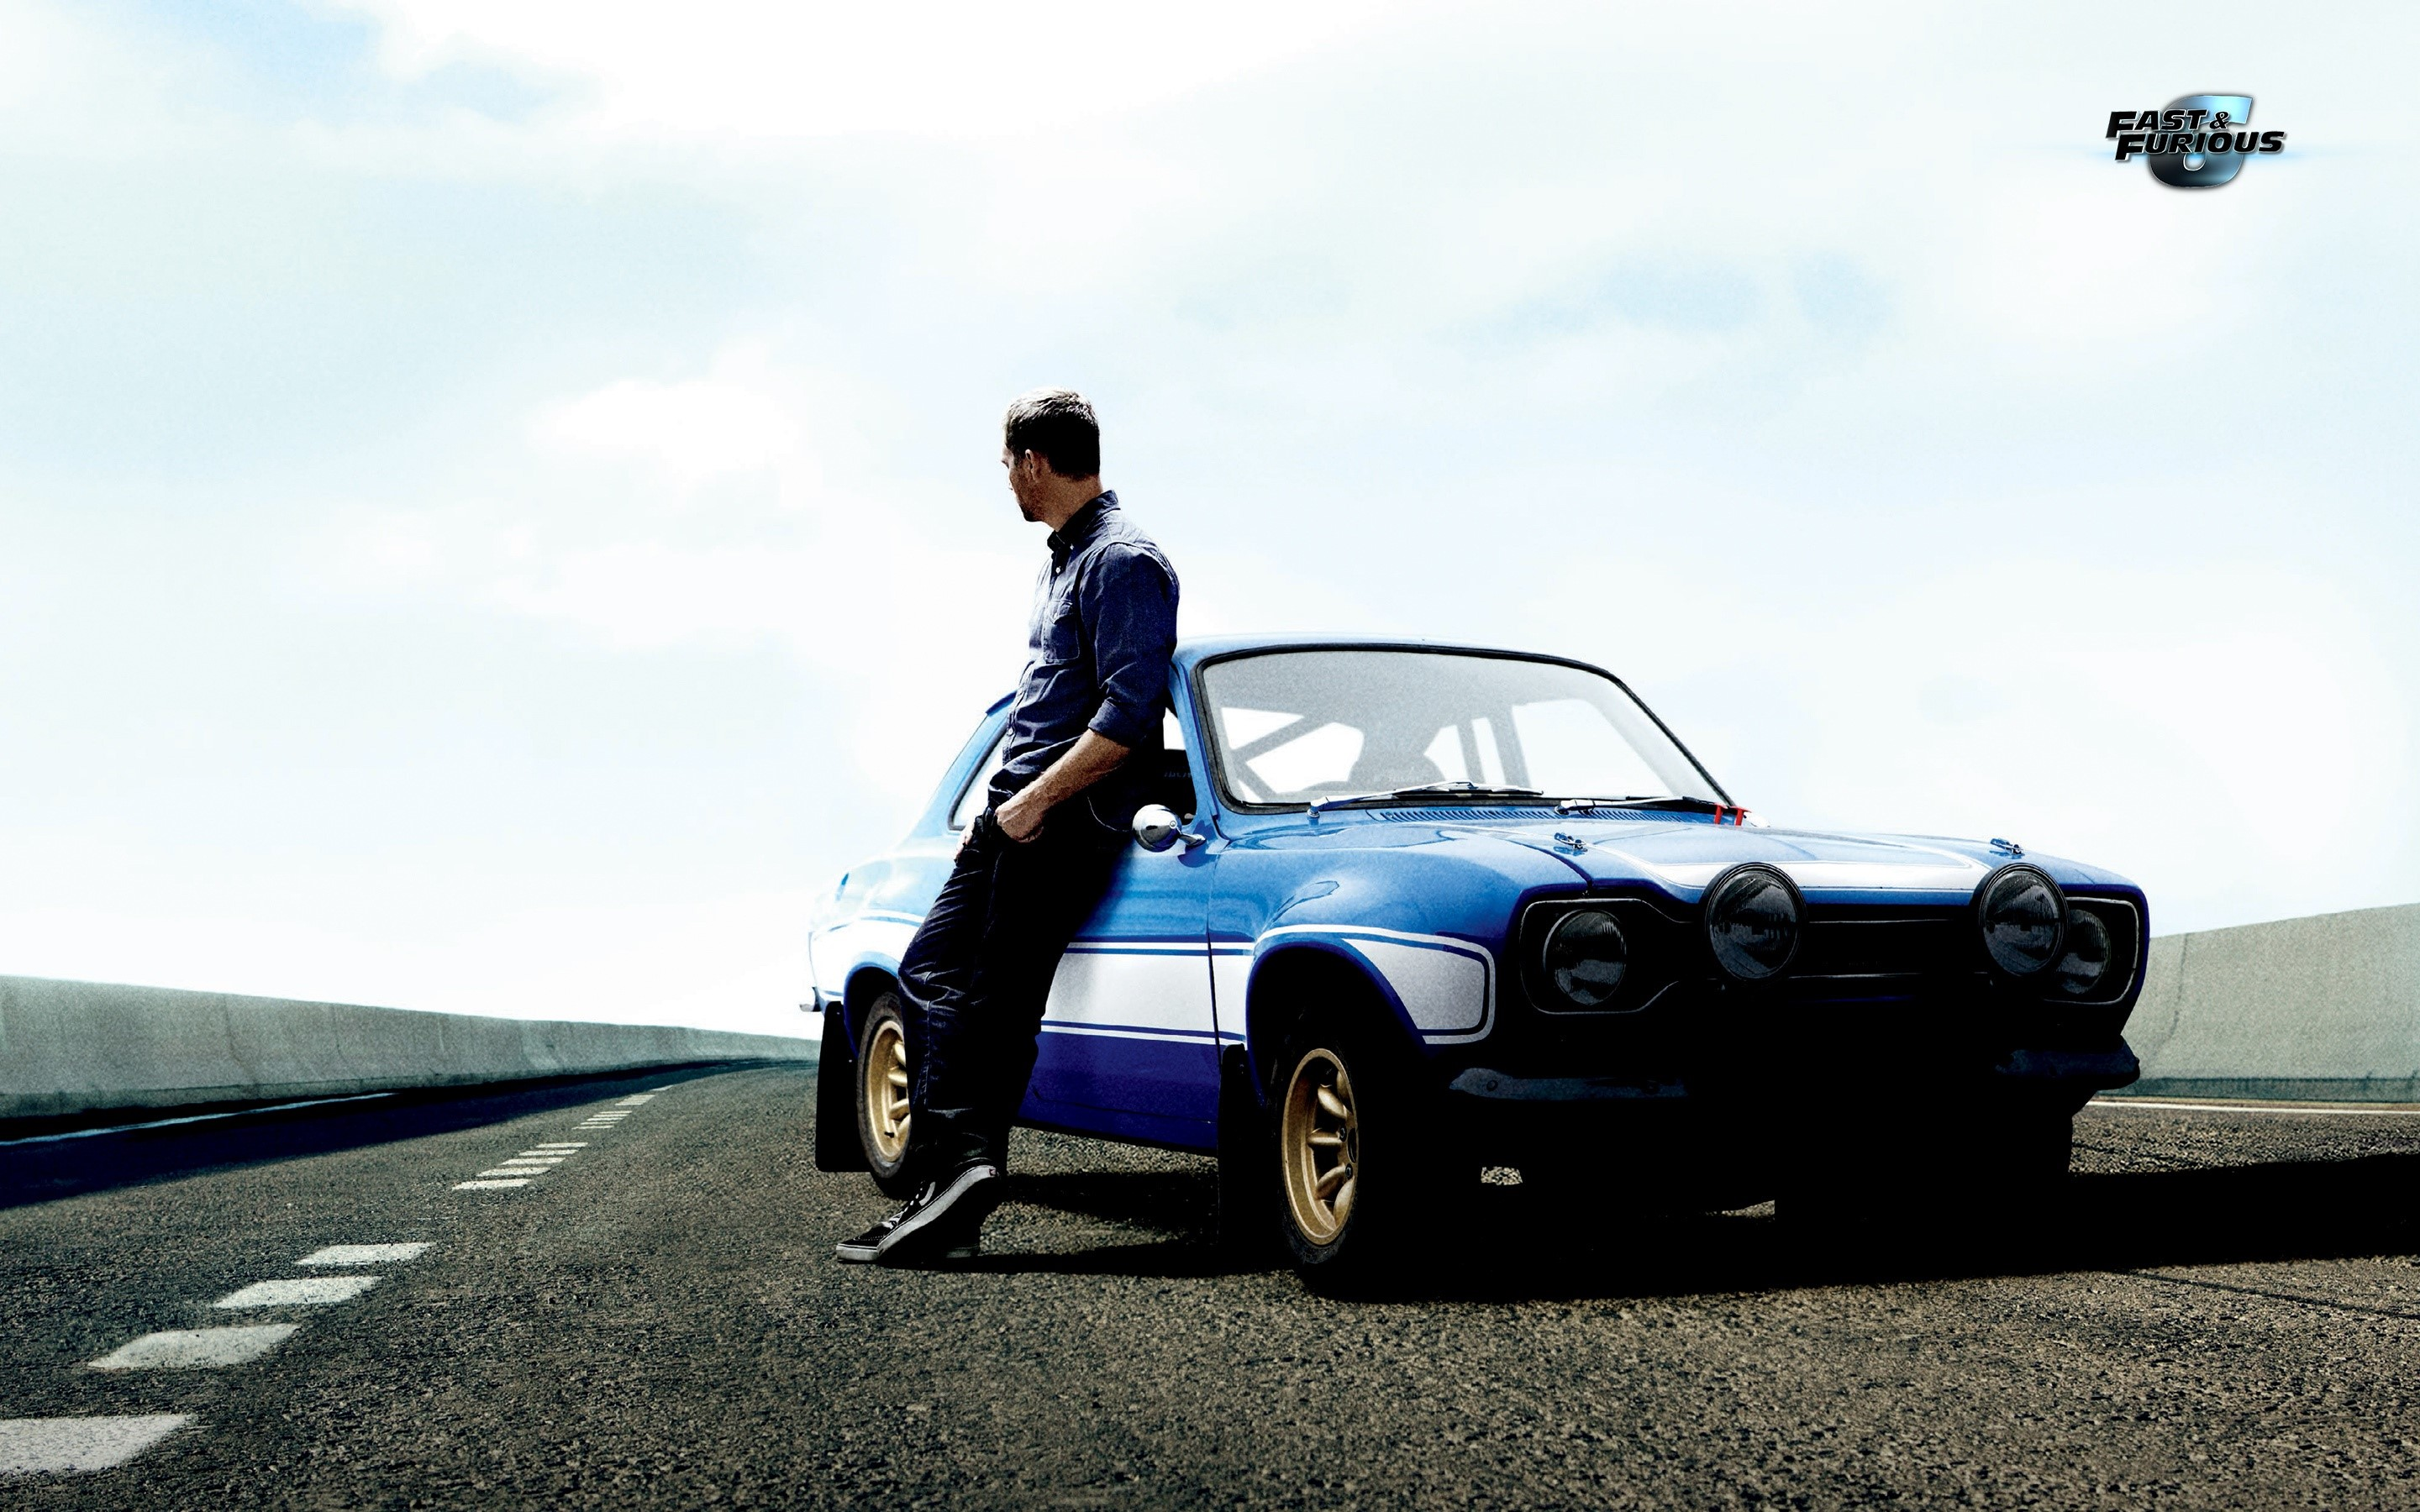 Wallpaper Paul Walker in Fast and Furious 6